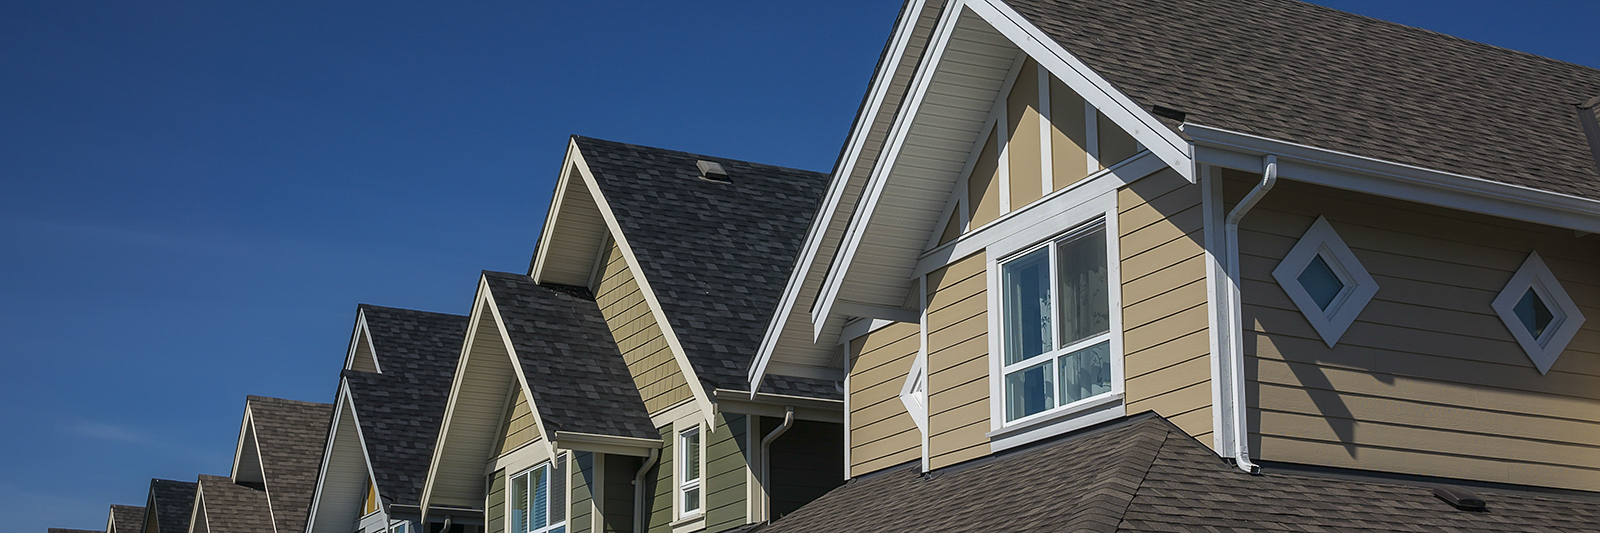 Townhome-Roofline-Generic-(1-of-1).jpg